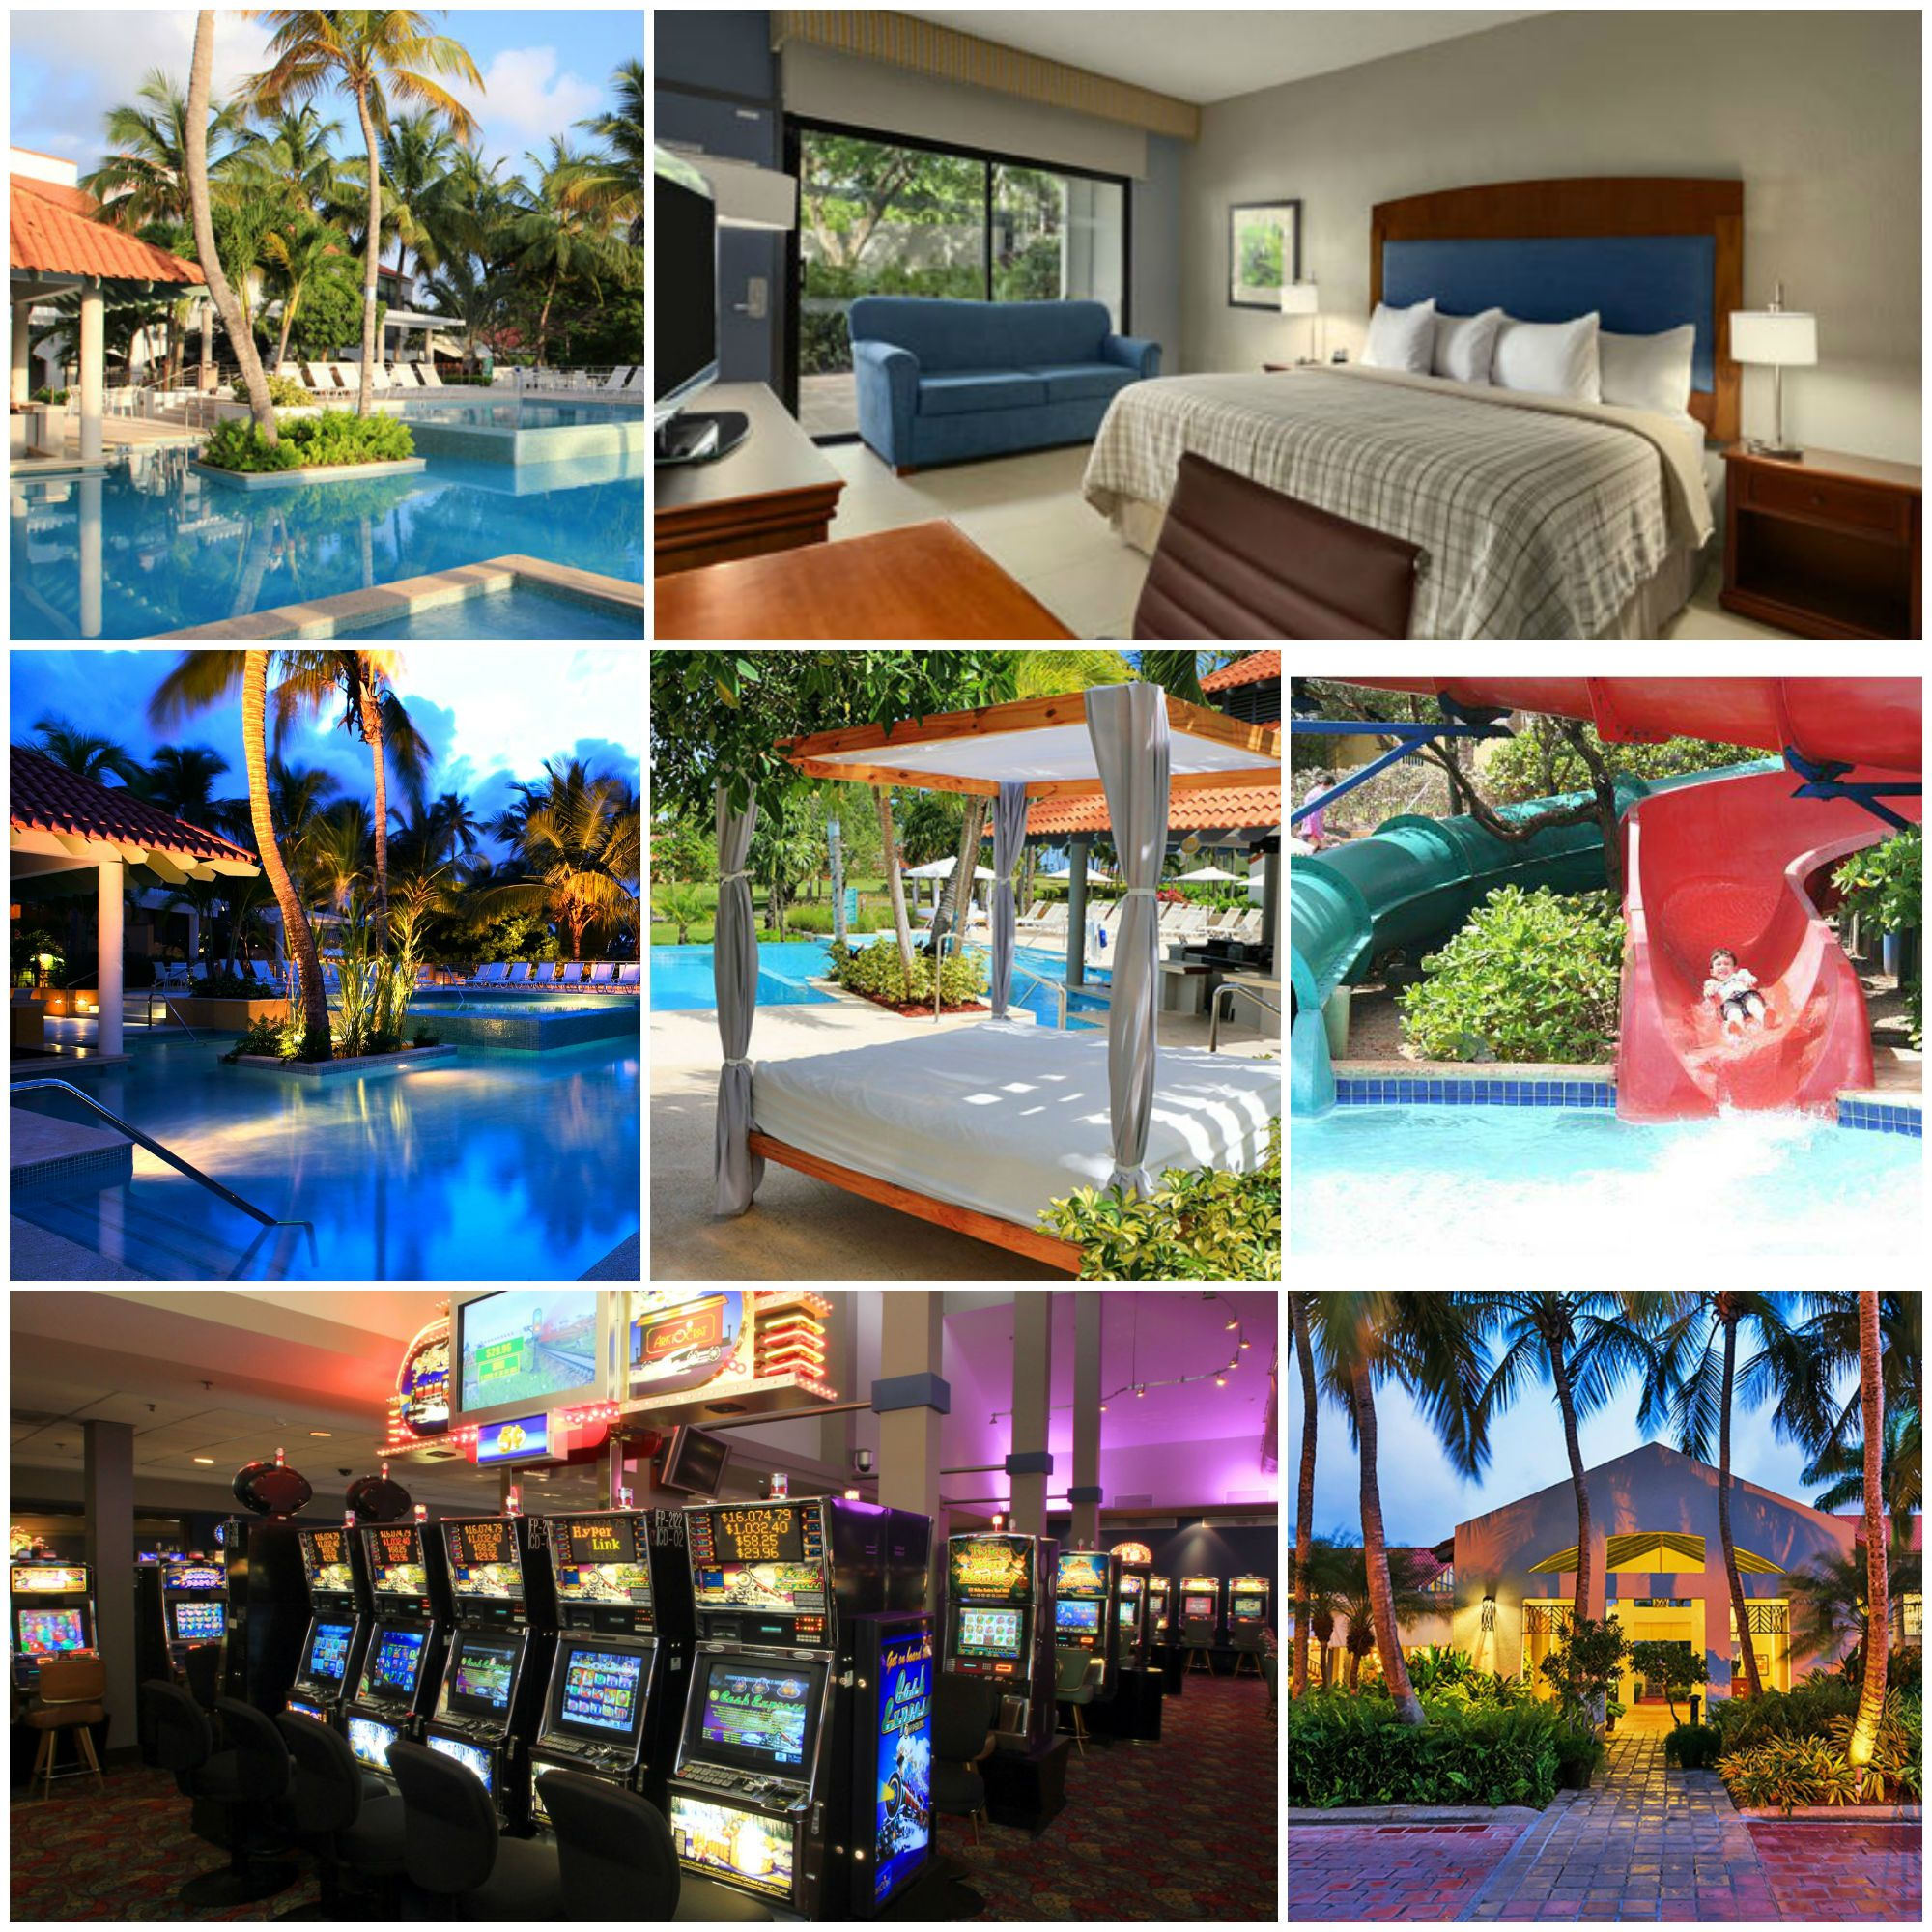 3-Star All-Inclusive Beachfront Hotel At Puerto Rico For